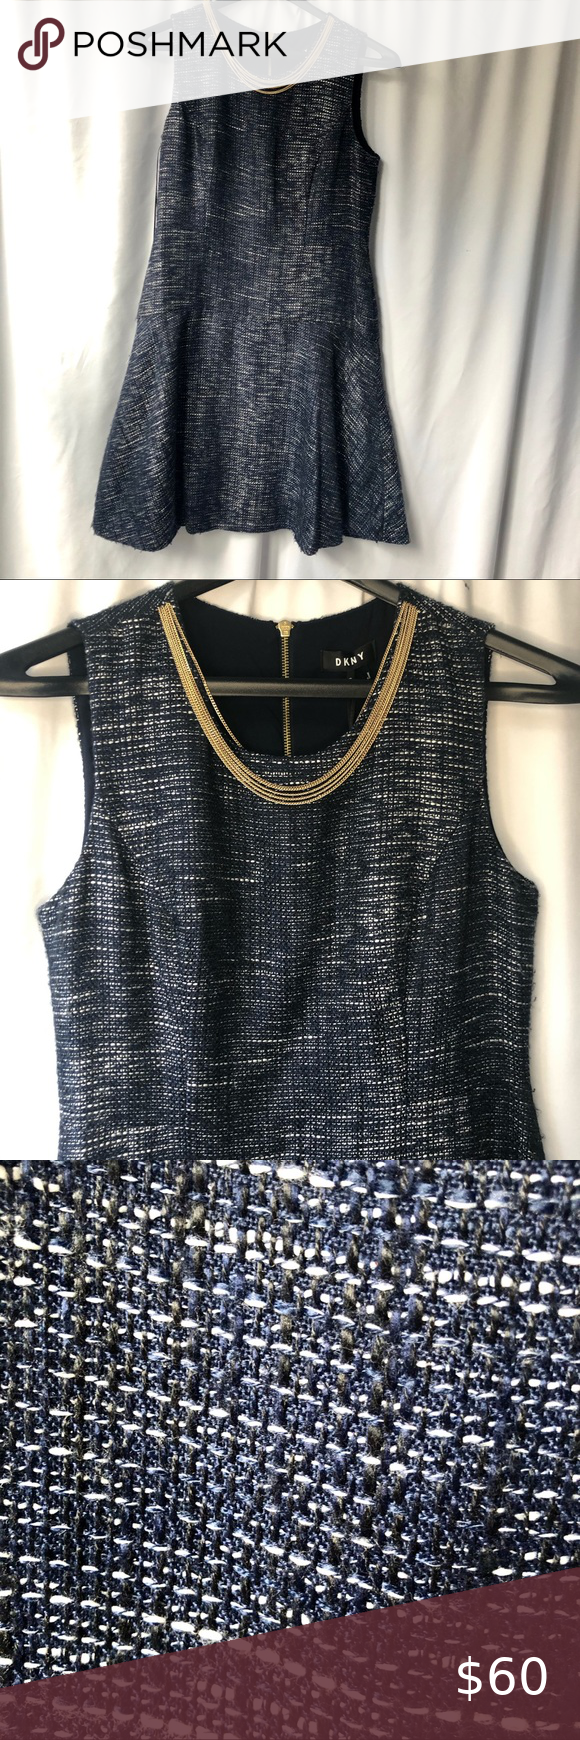 DKNY navy blue and black women's dress New with tag, women's dress  Perfect ...